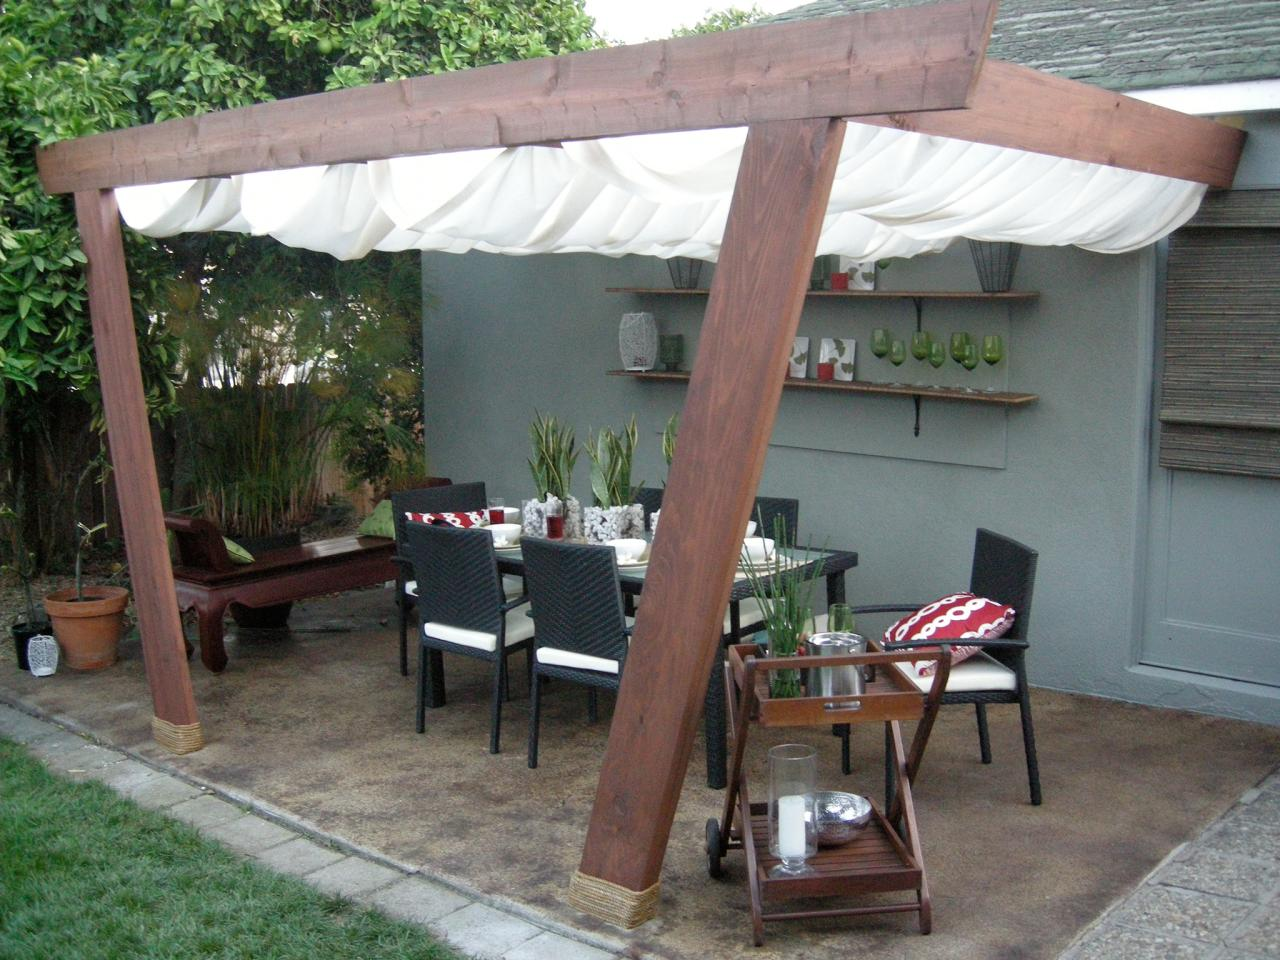 Patio Covers and Canopies & Patio Covers and Canopies | HGTV